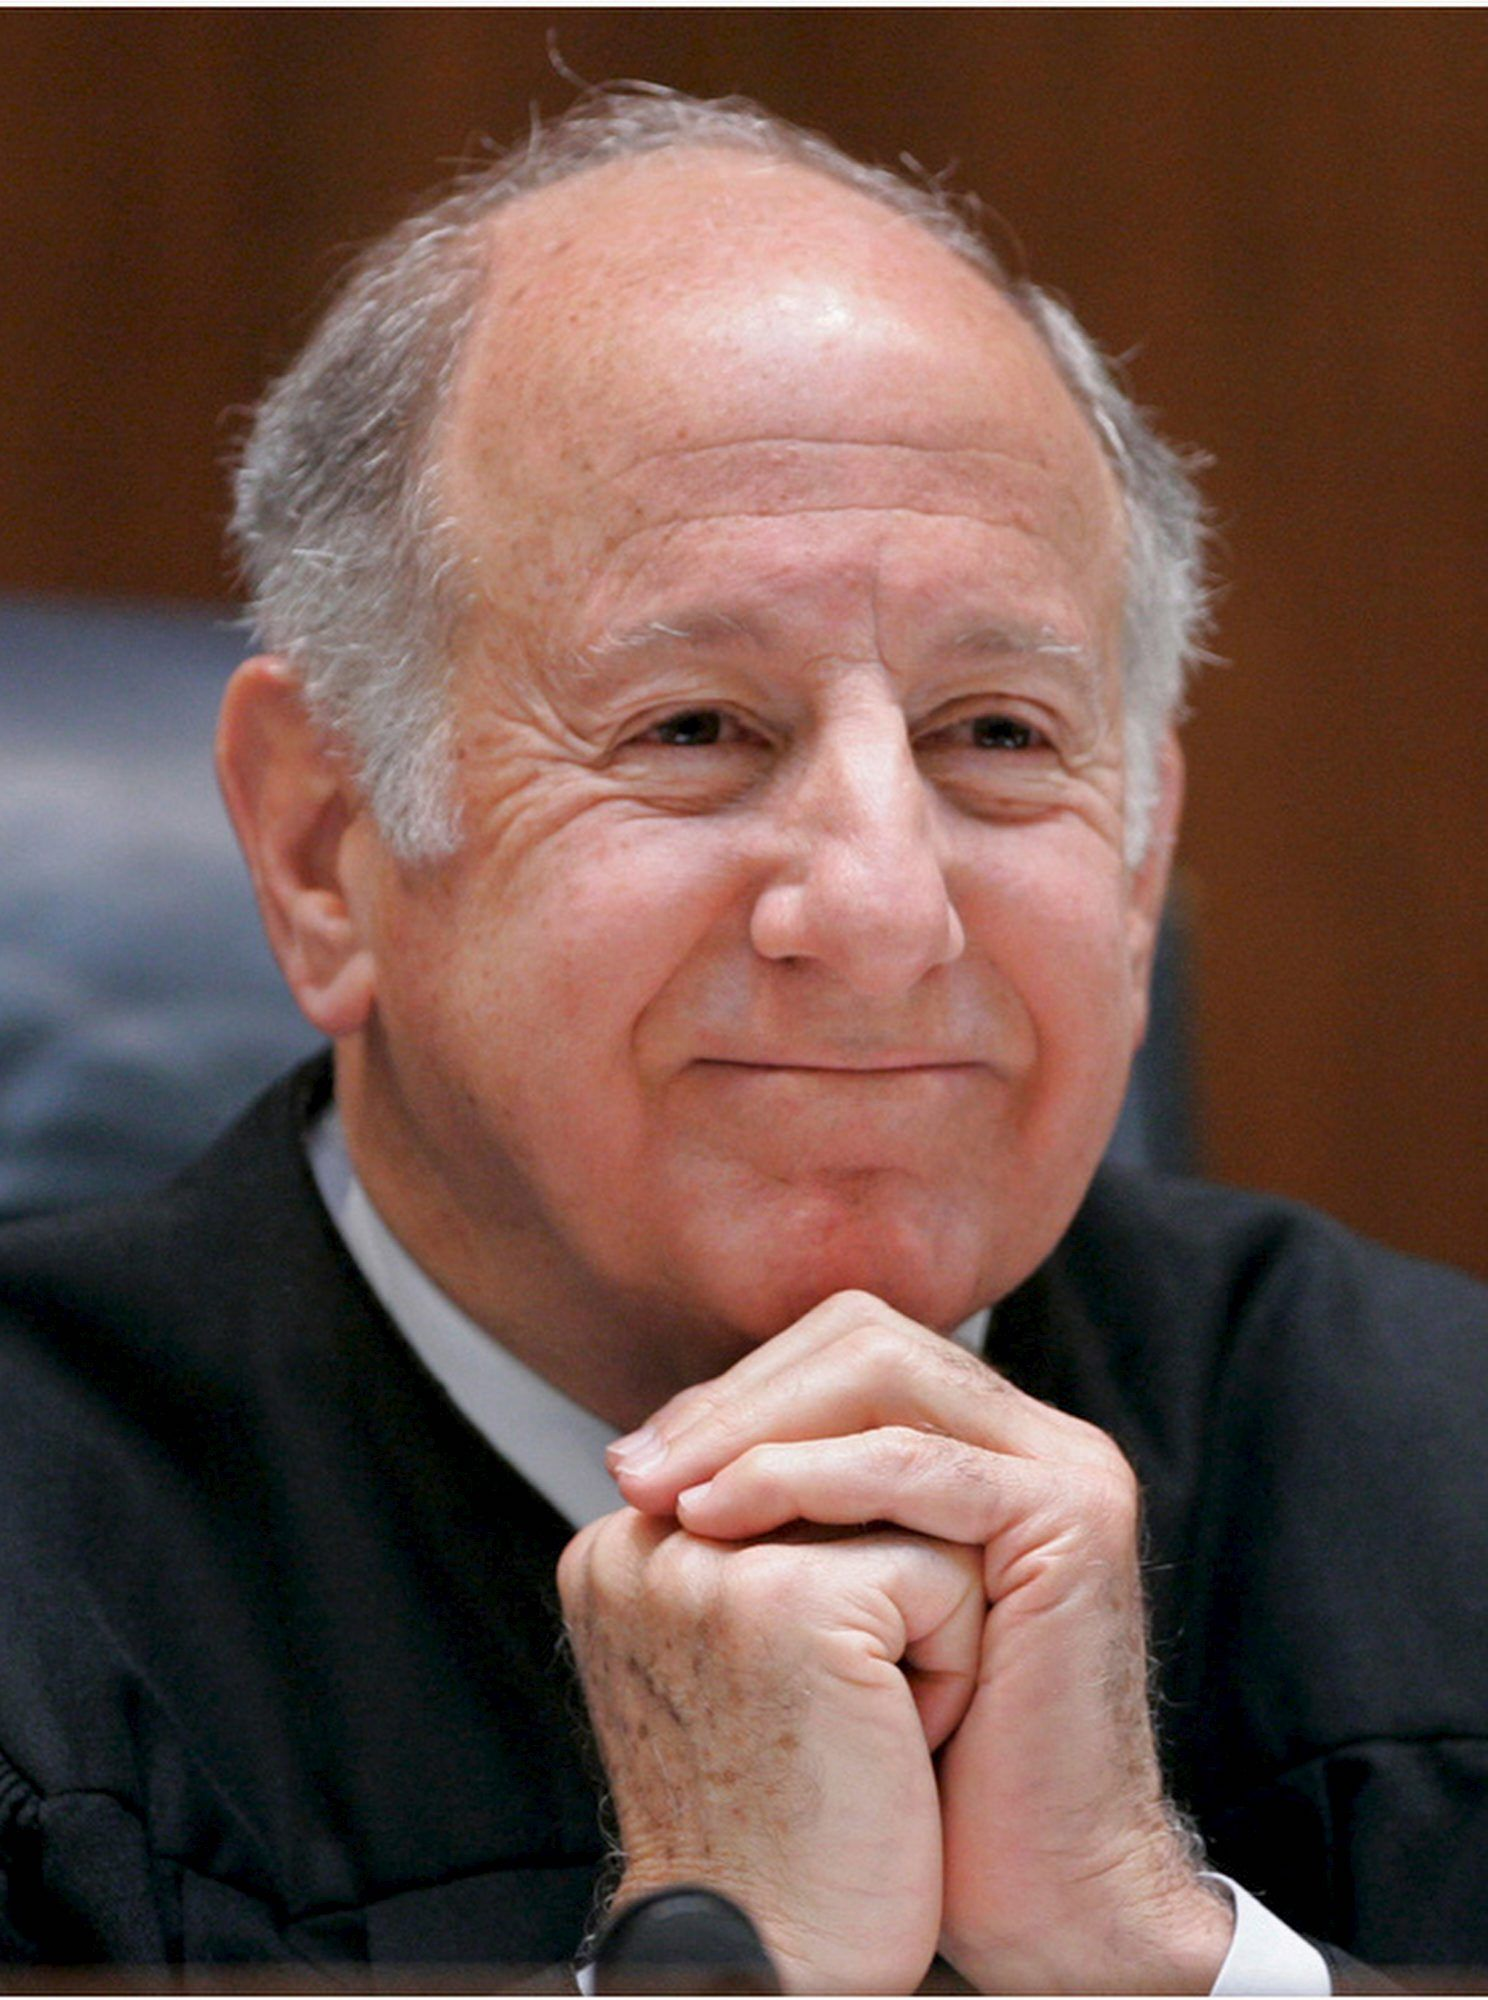 Meet the Court That Will Decide the Fate of Prop. 8